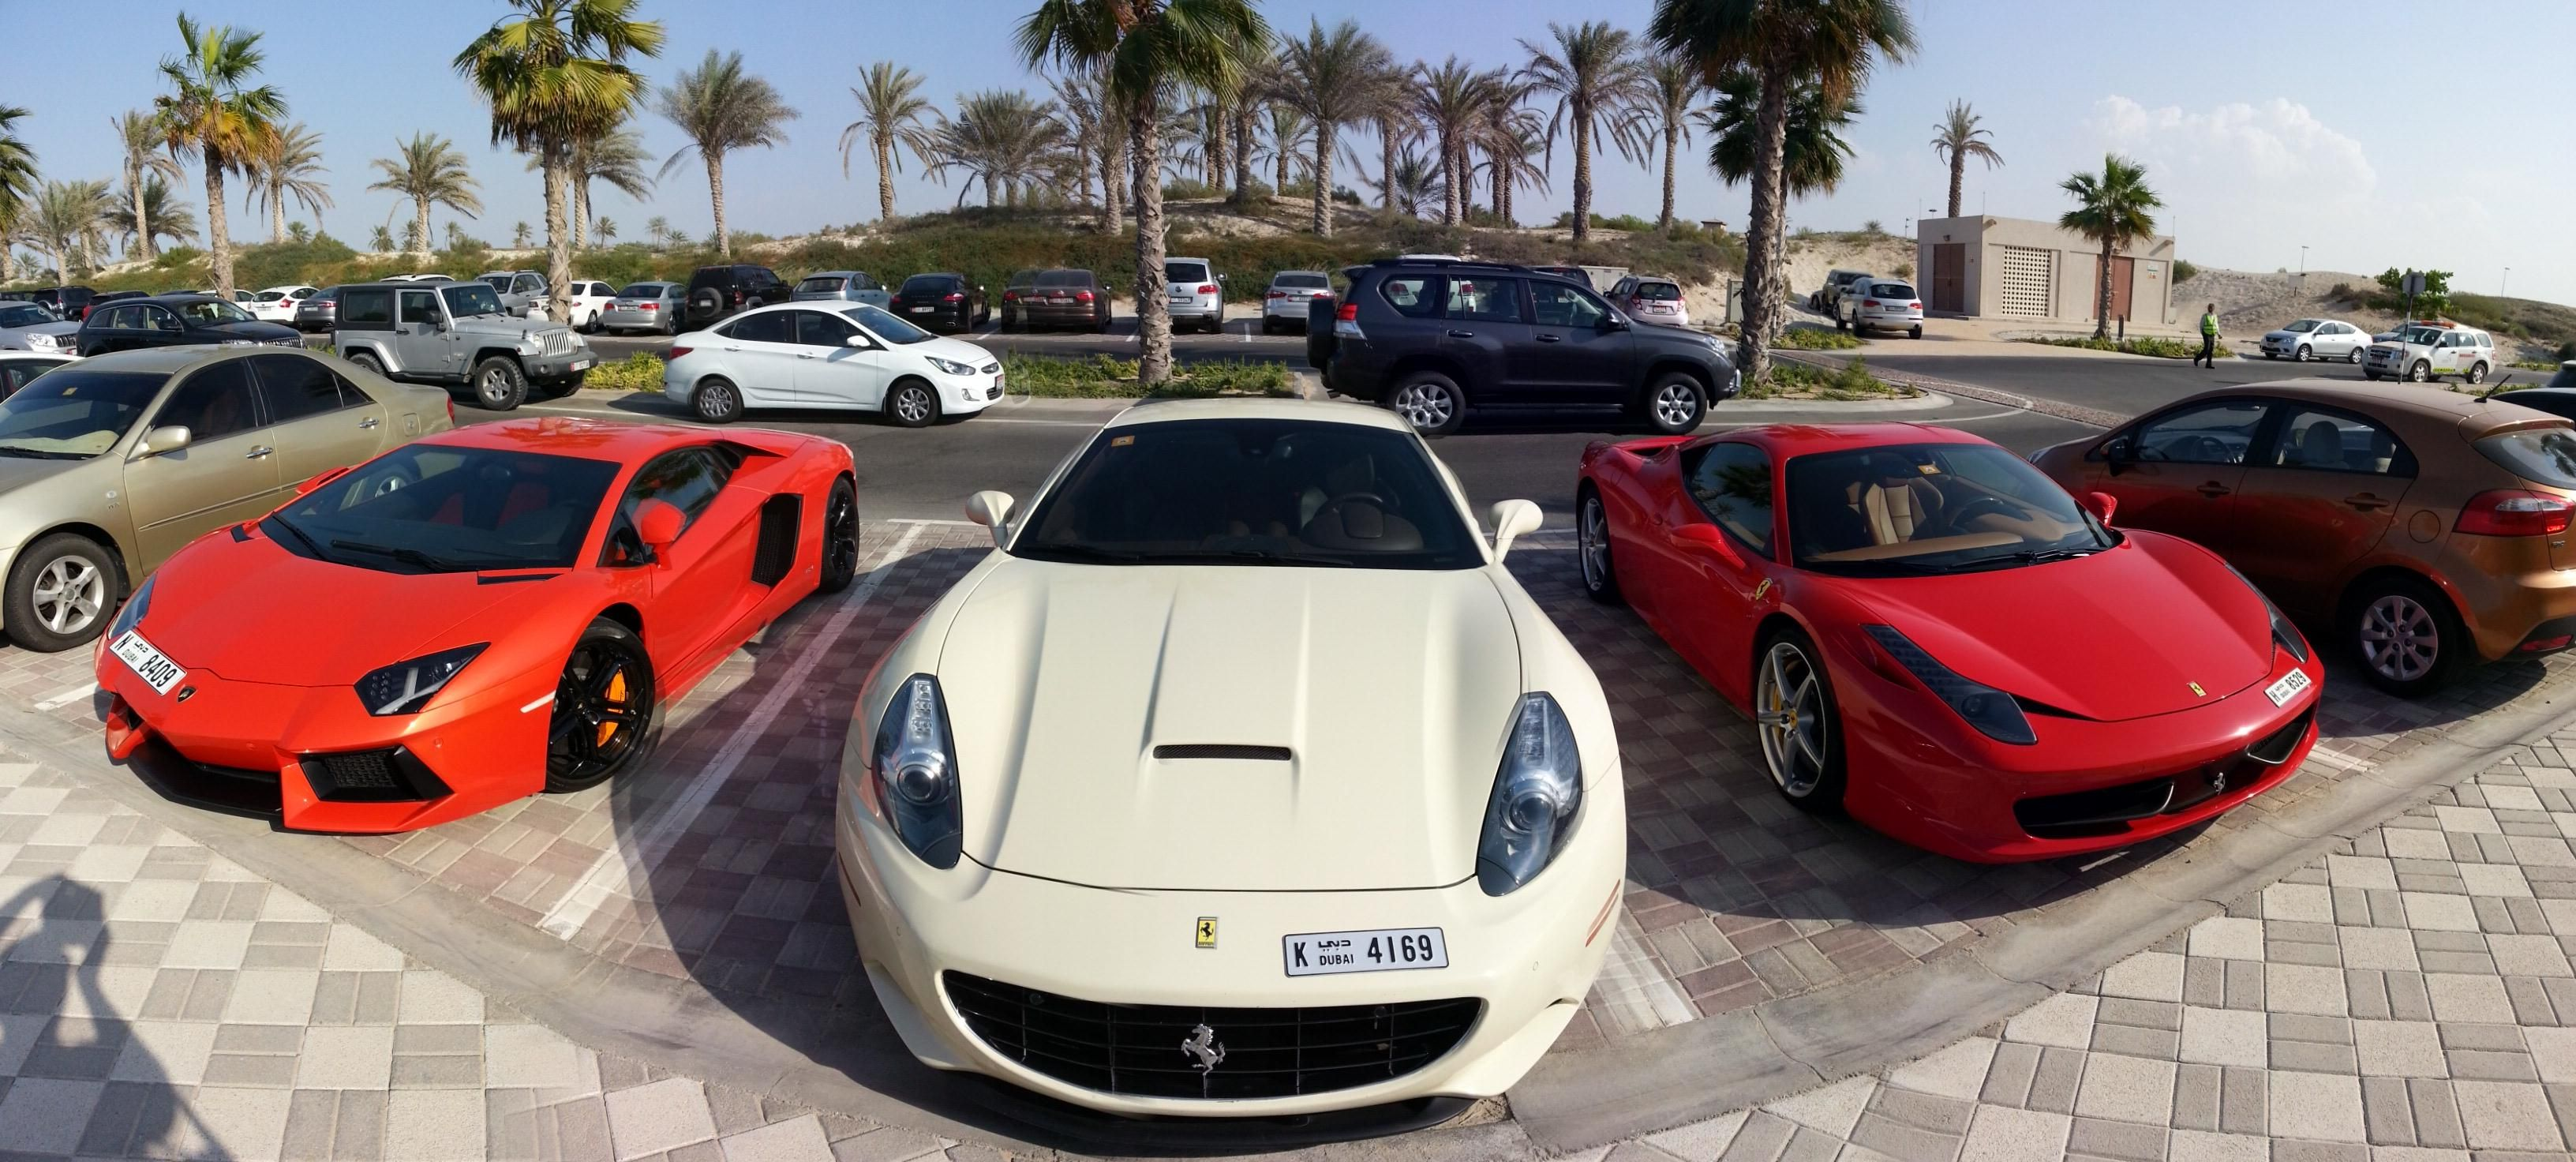 The Dubai Police can sell 81 seized cars, if their